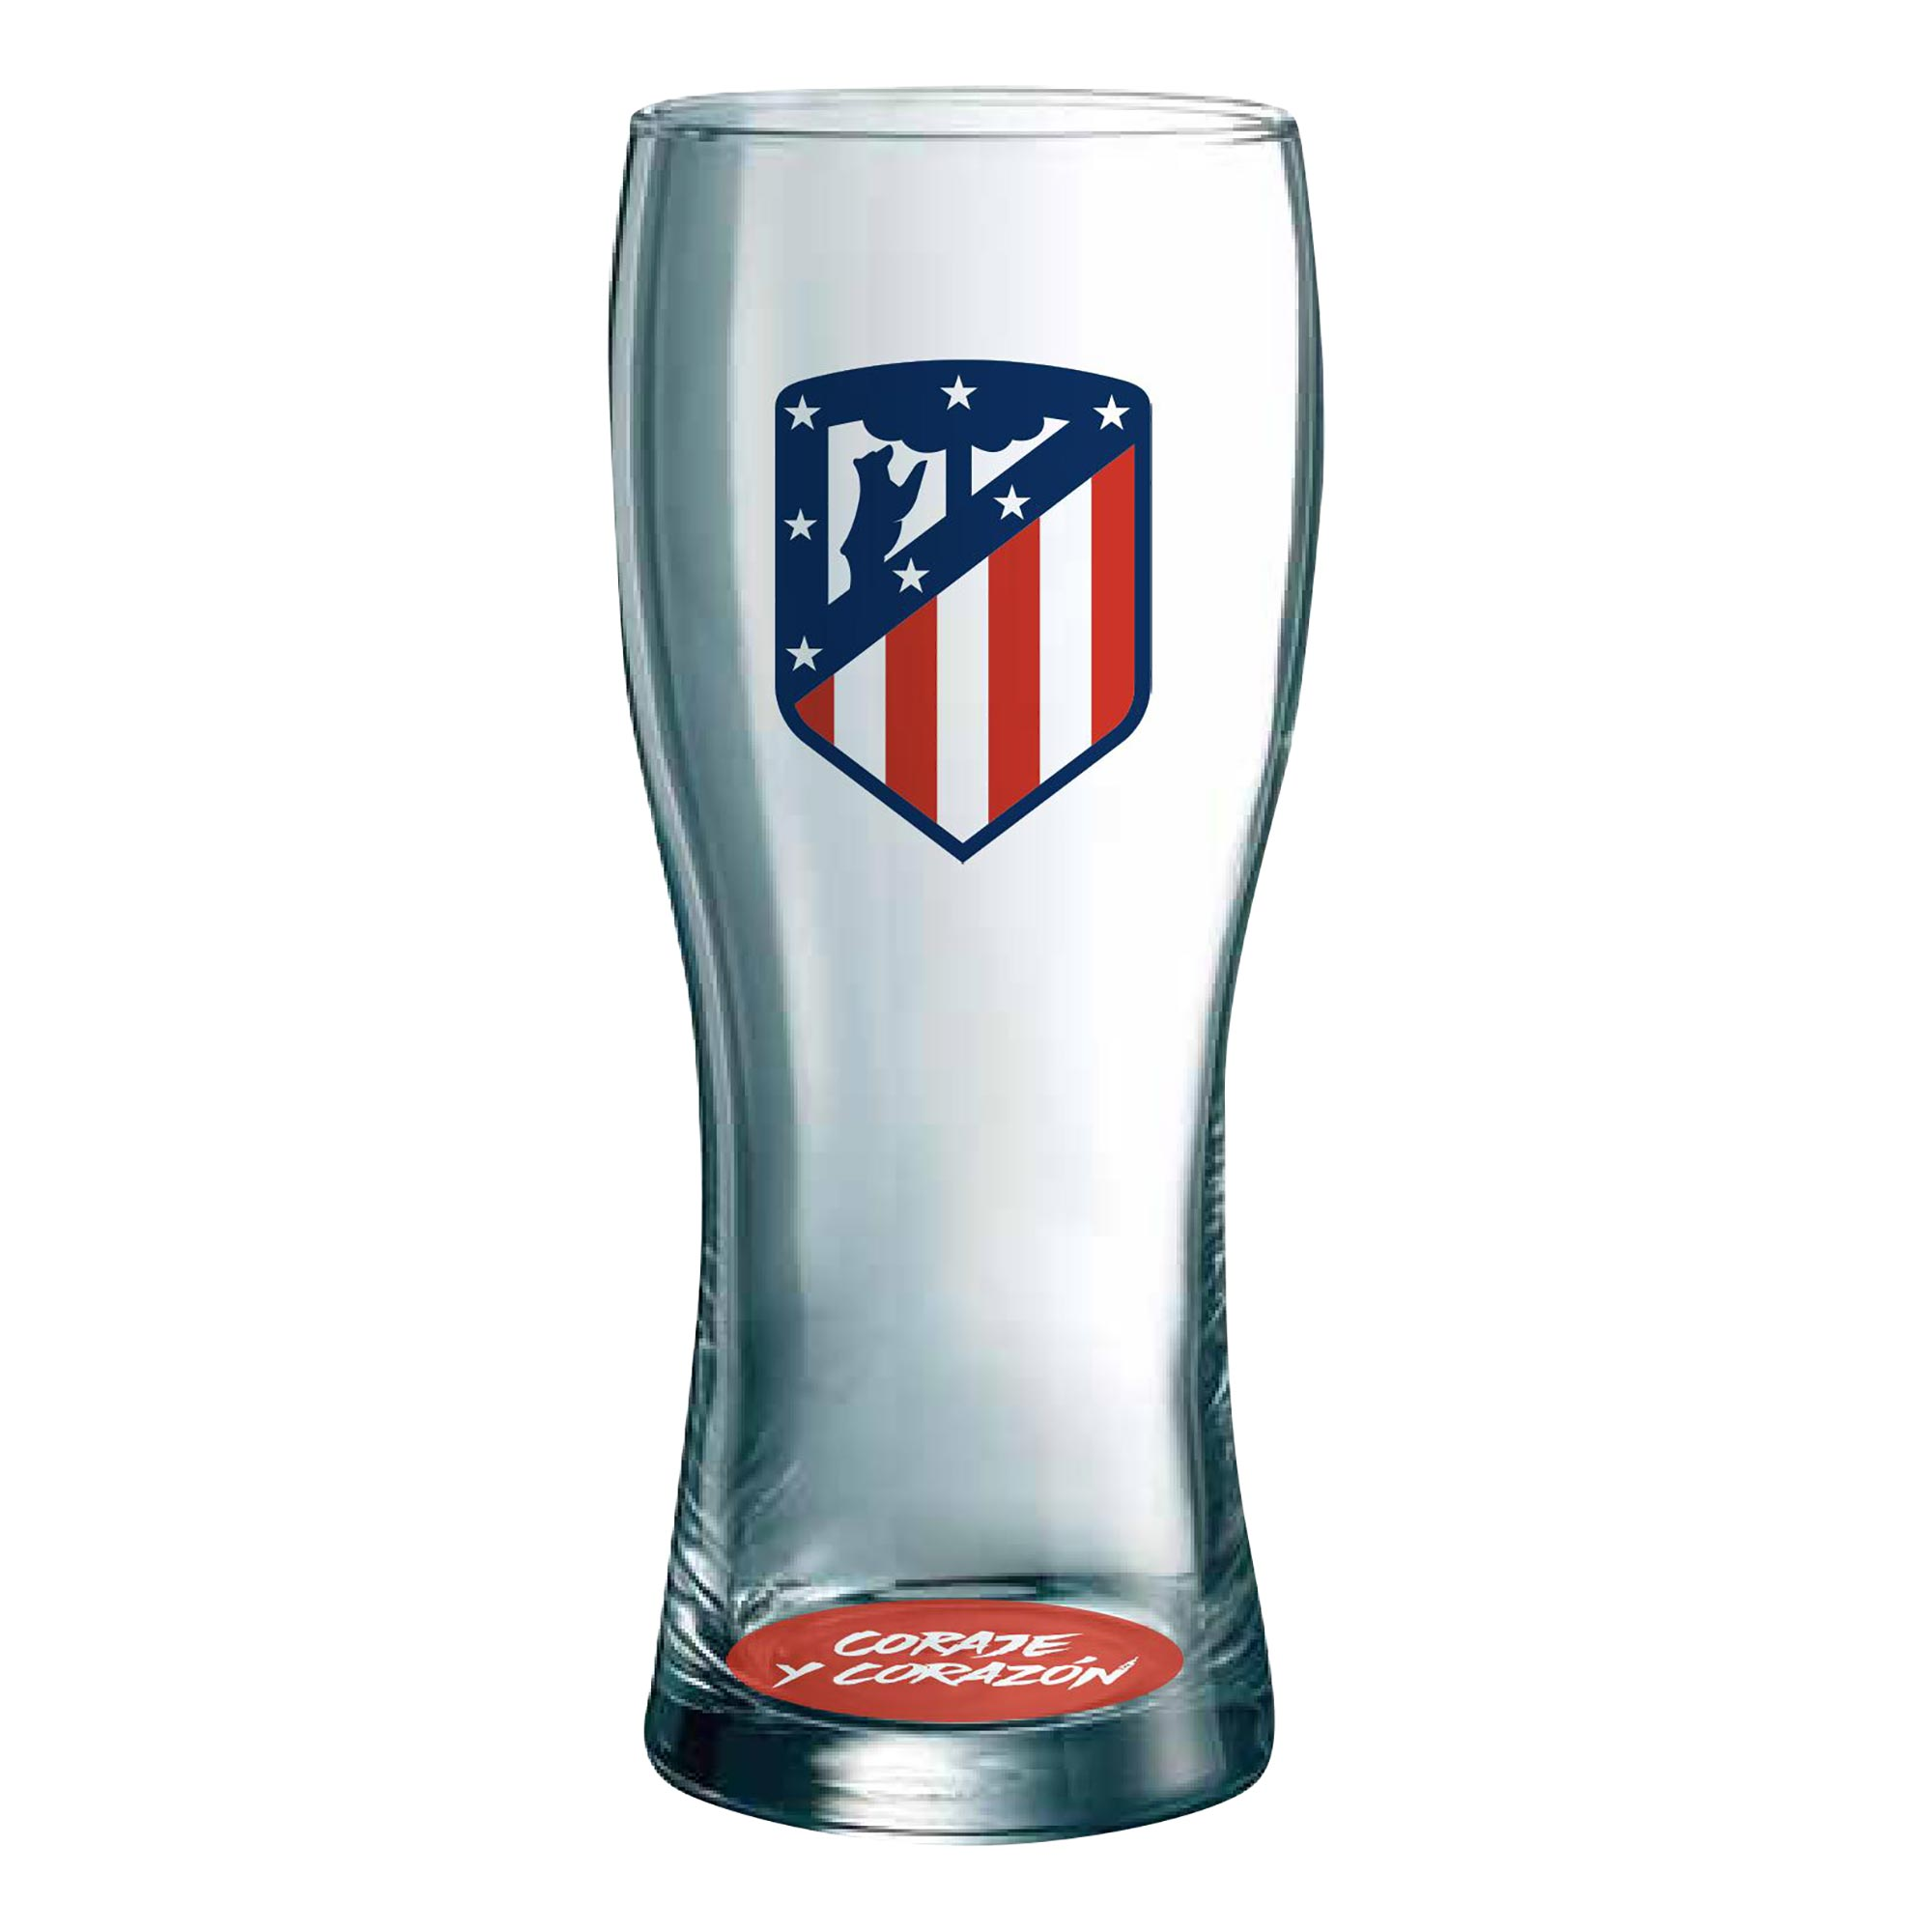 Glassware & Porcelain, S.L / Atlético de Madrid Crest Pint Glass